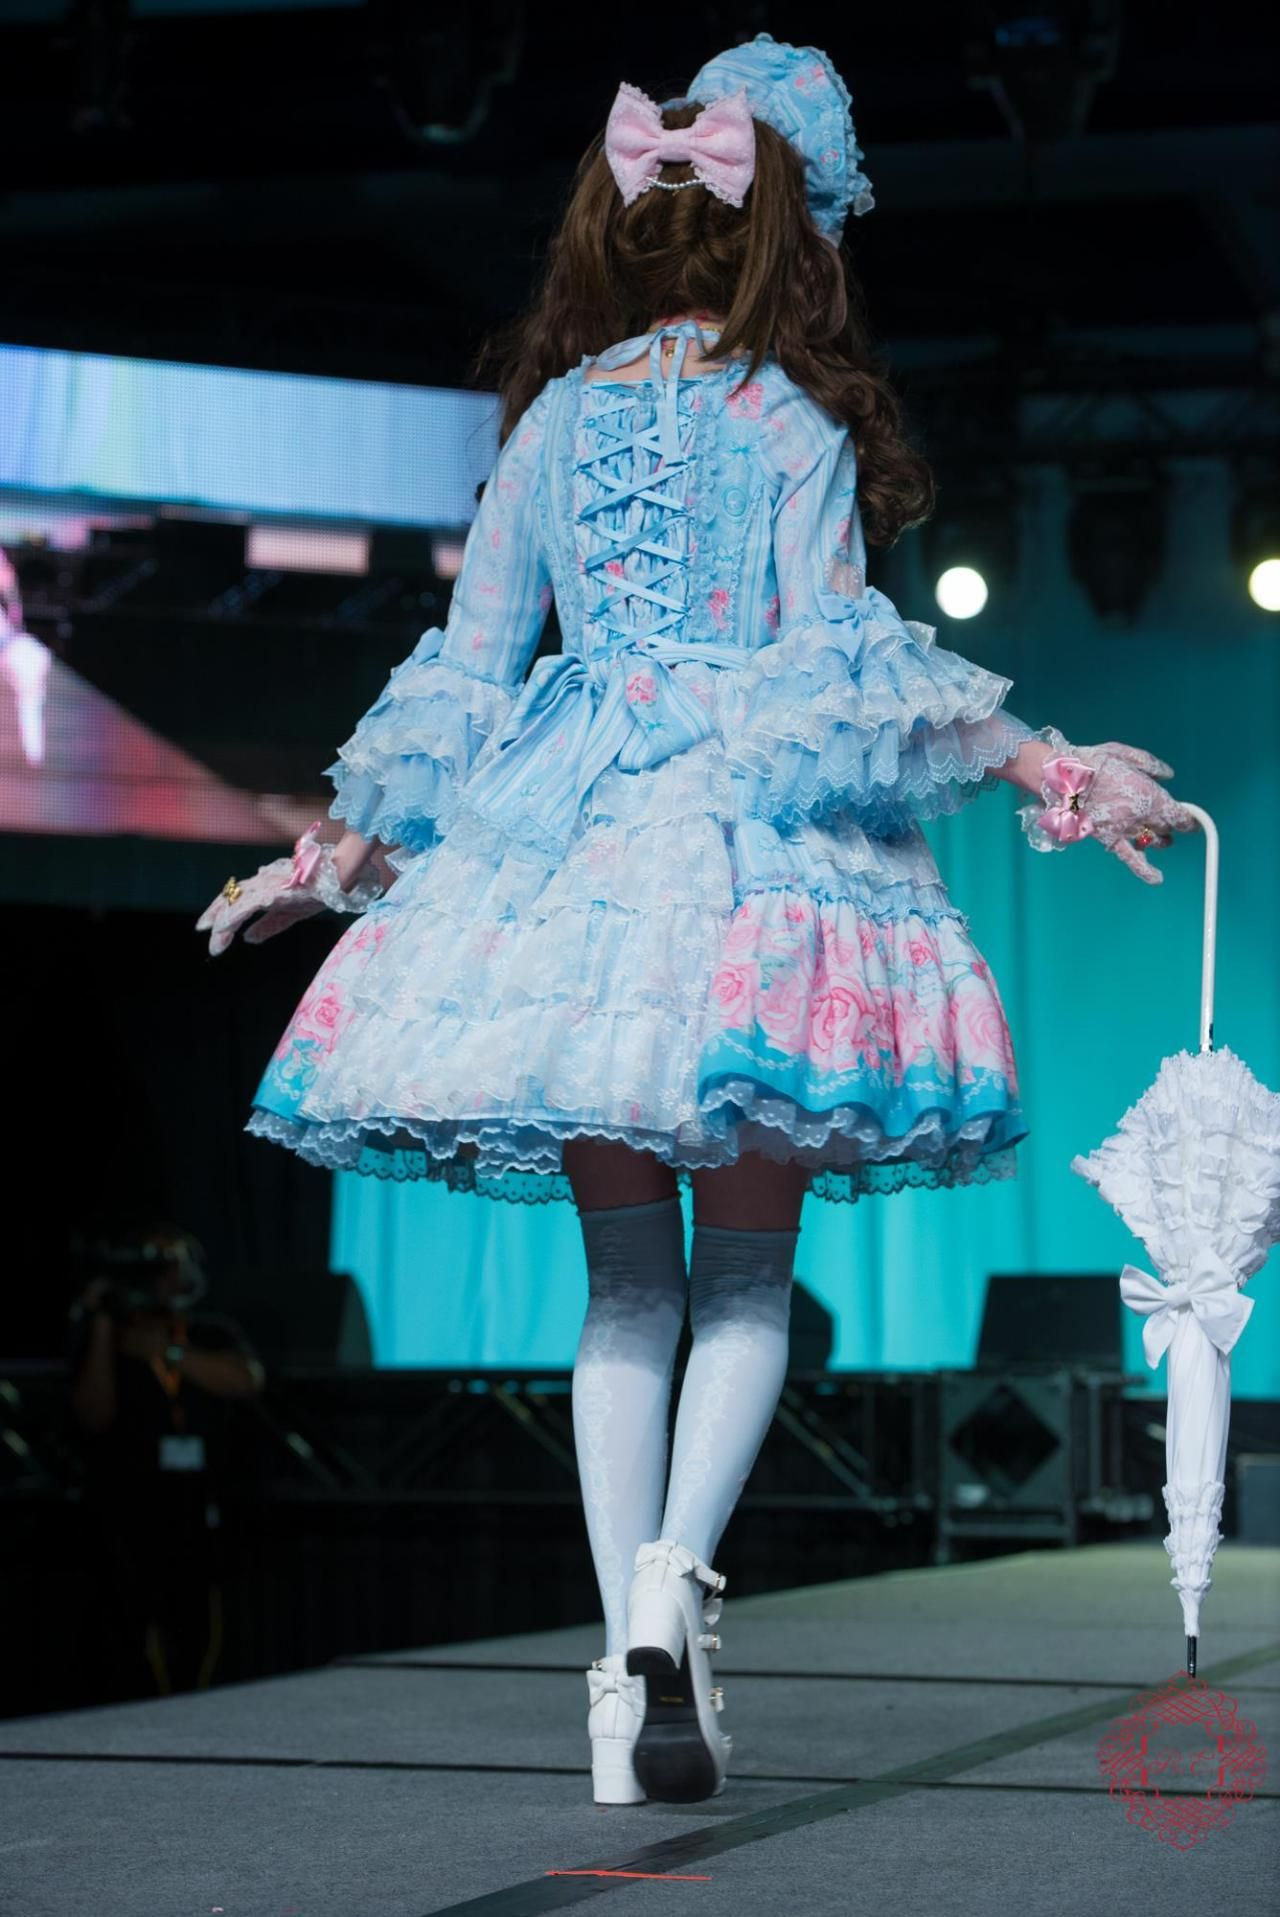 778f1721bb ♡♥mint kismet in wonderland♥♡ — Here are some of my favorite photos I've  found of.